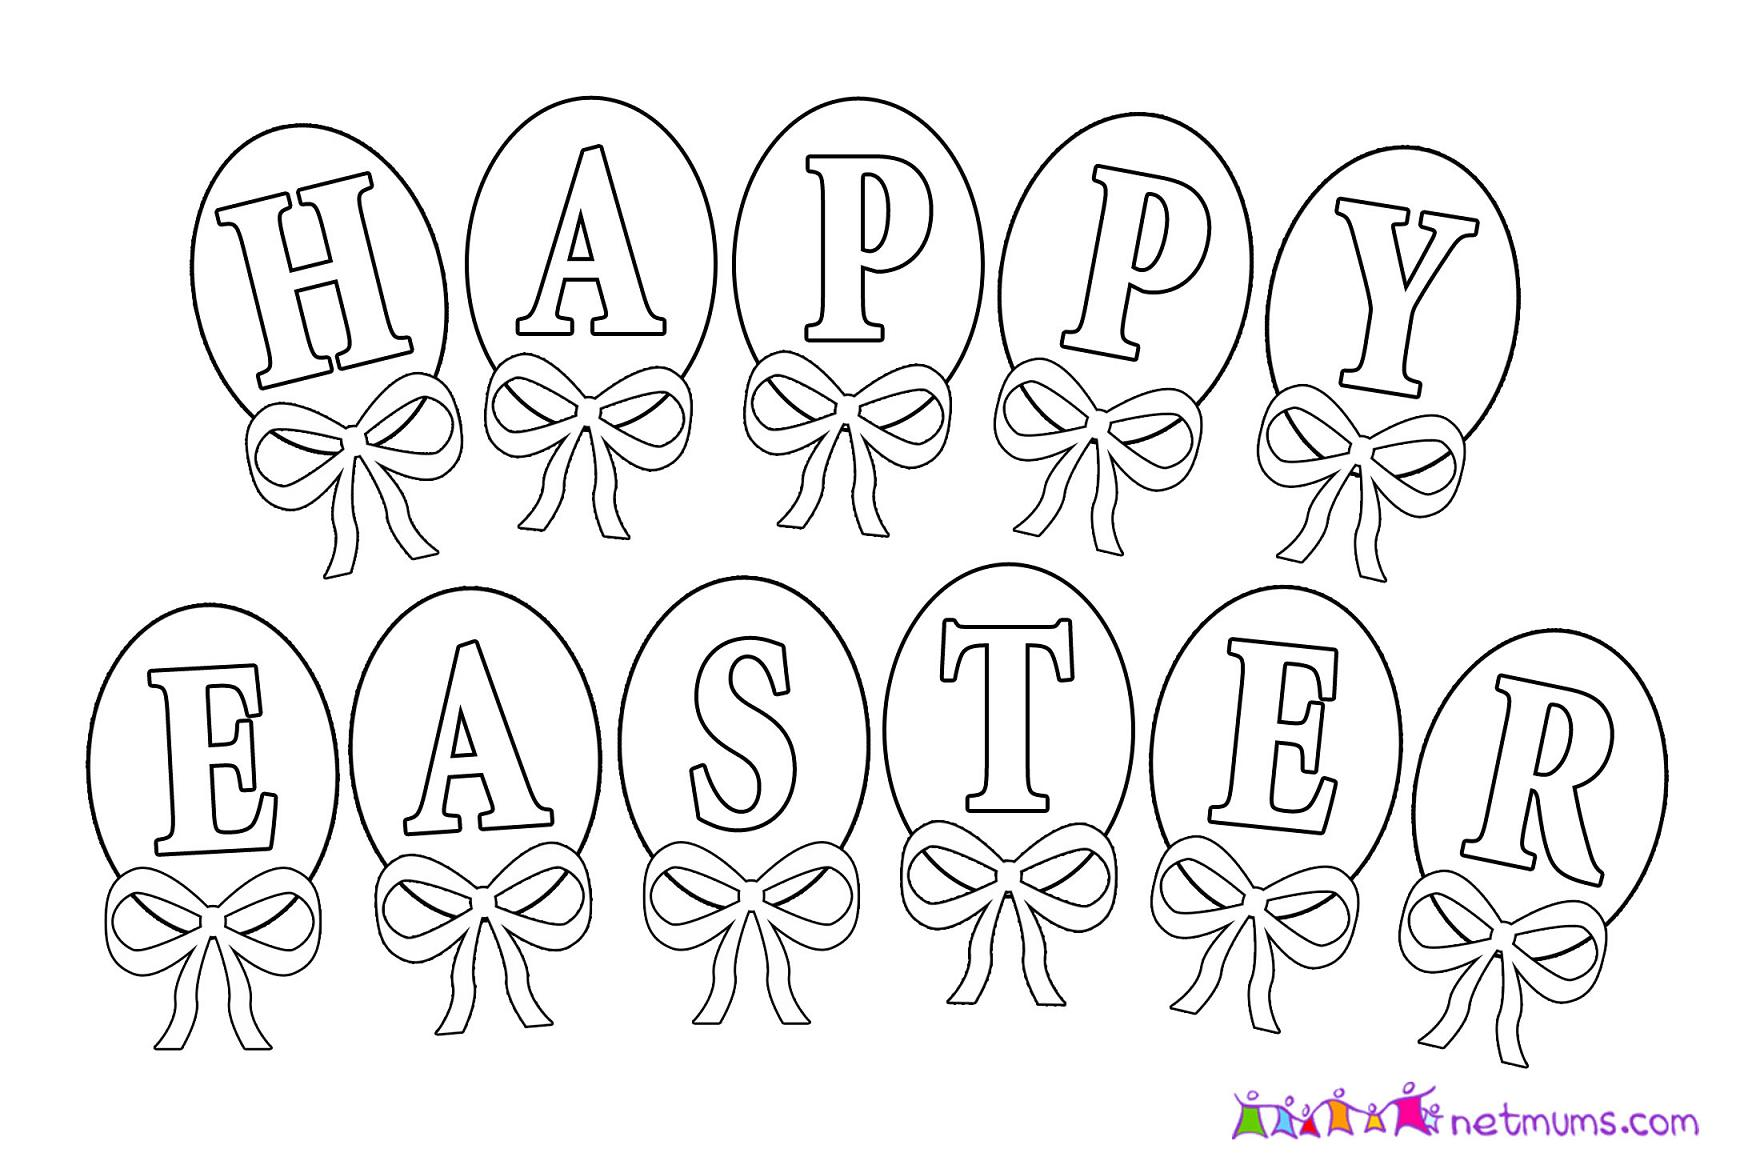 It's just an image of Punchy Happy Easter Coloring Pages Free Printable